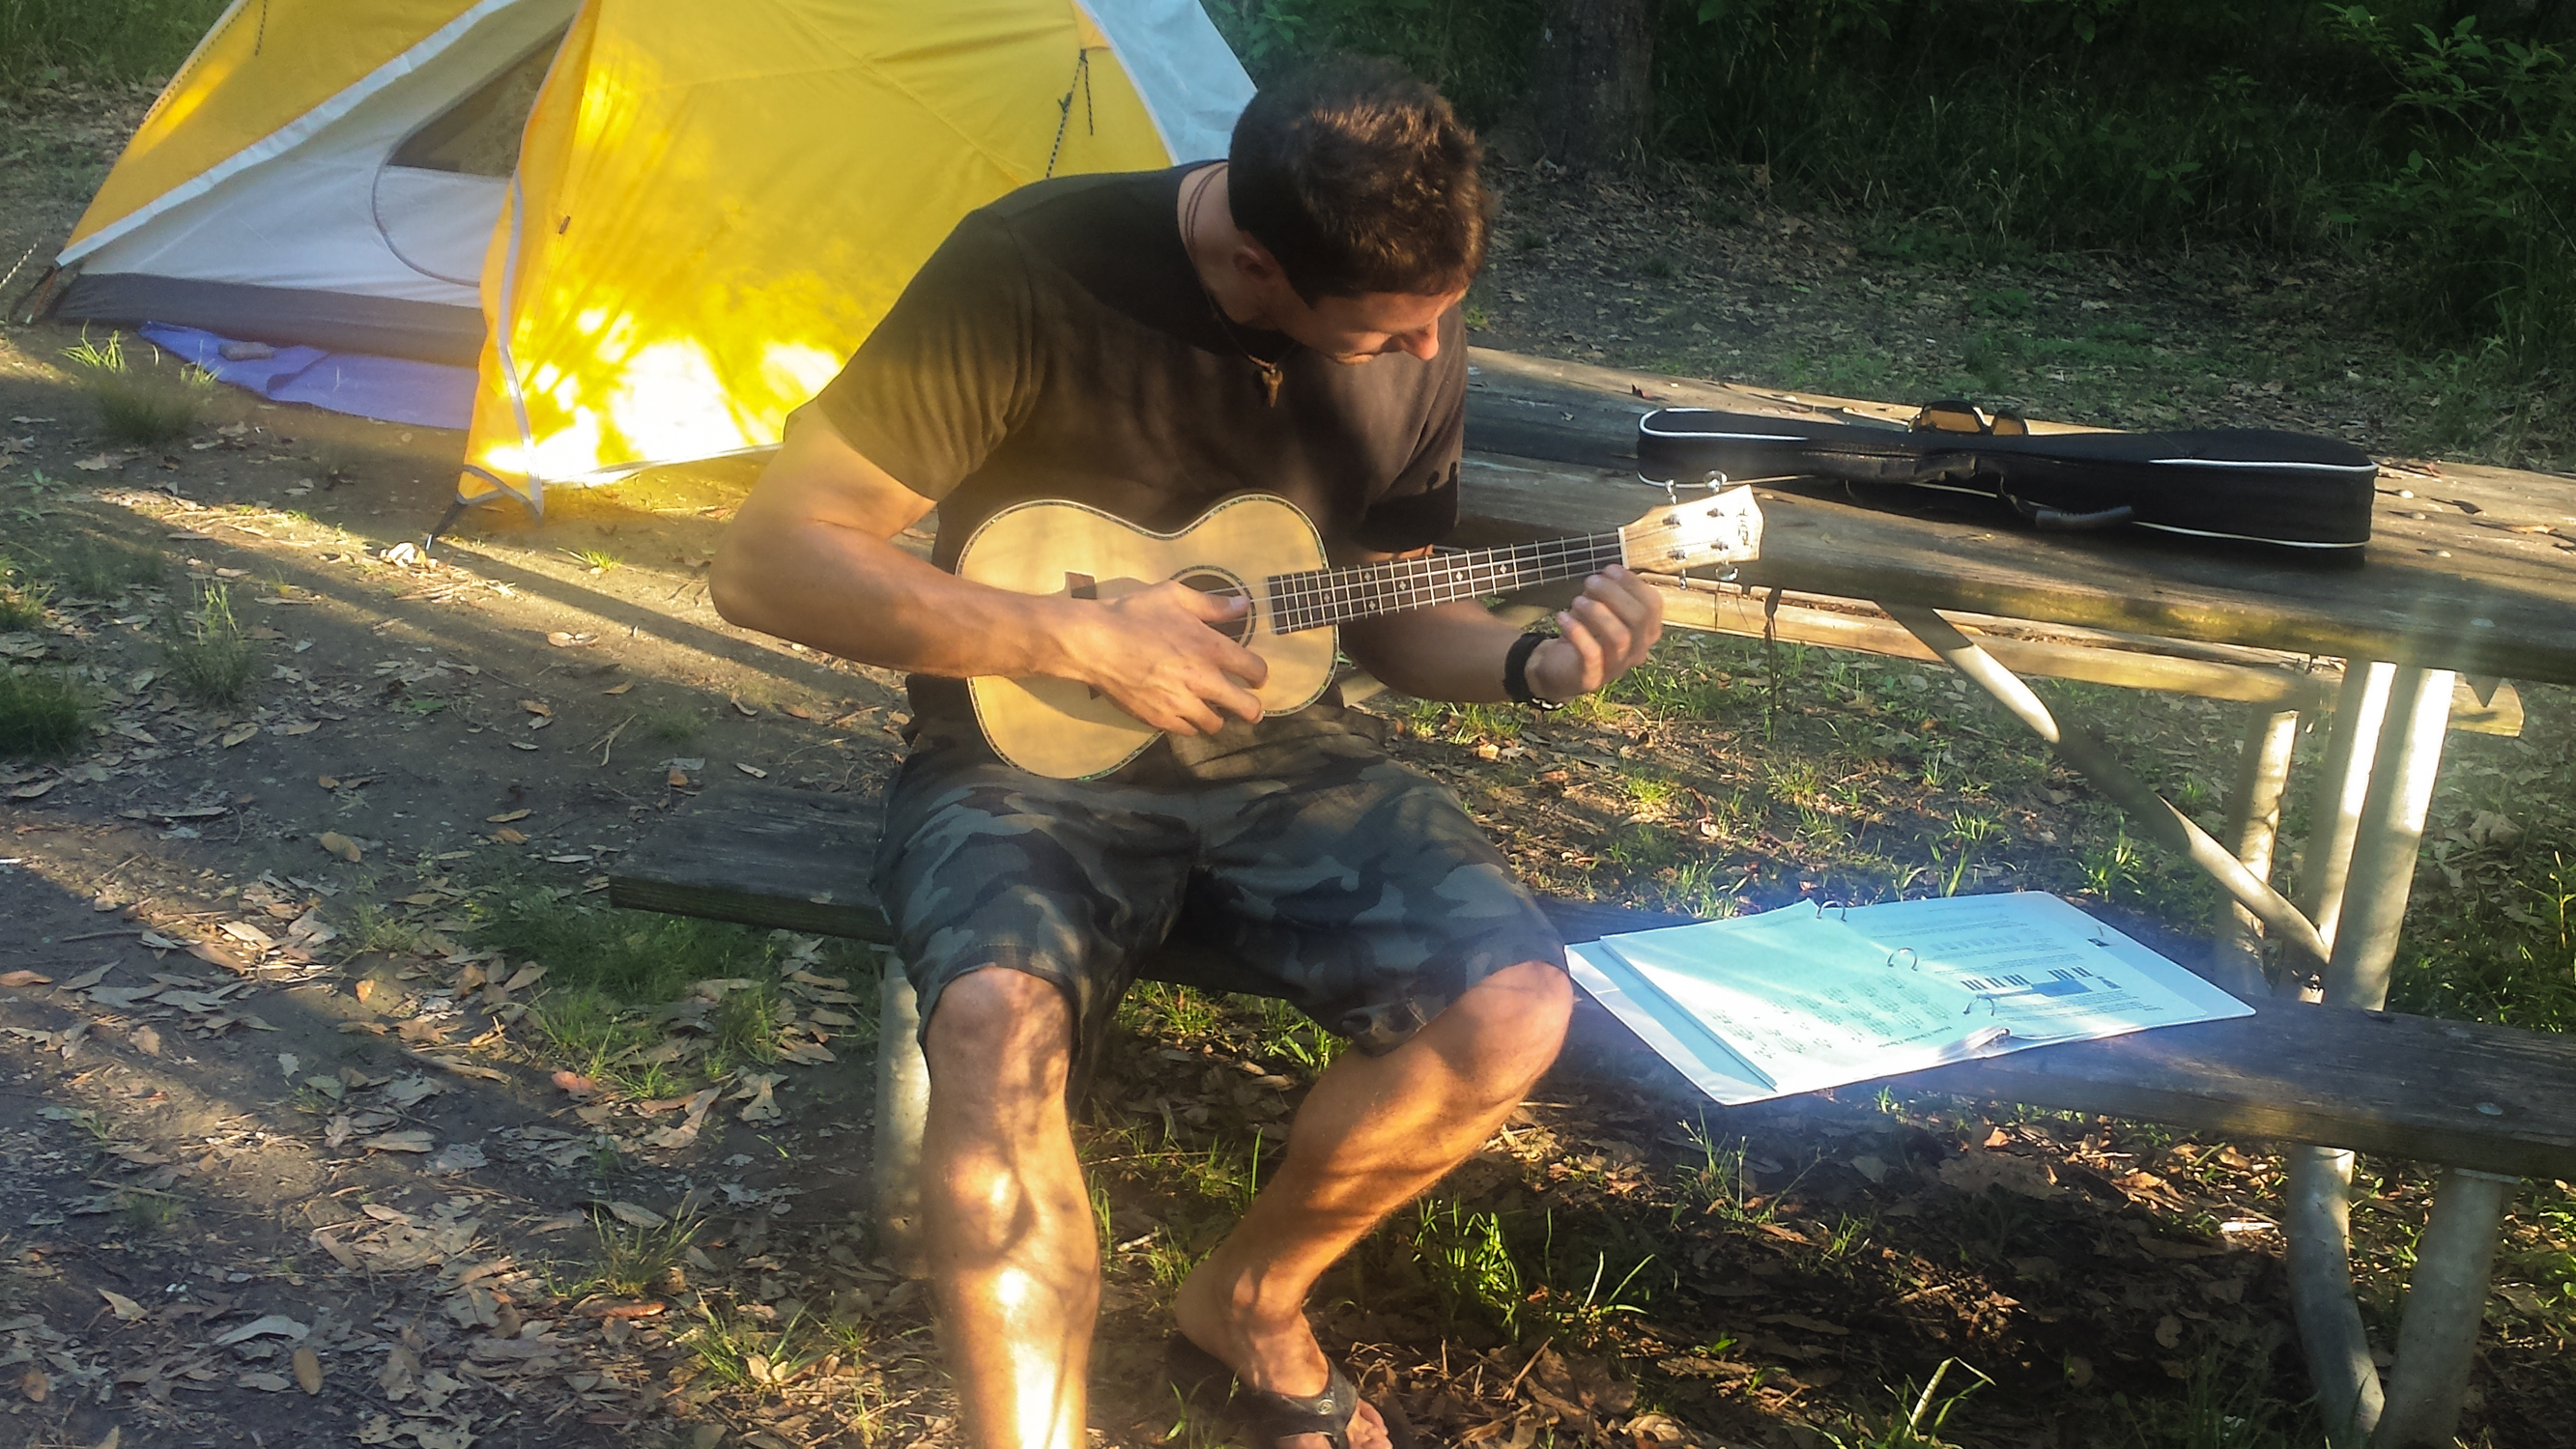 Fins to Spurs, Florida, Fontaine Bleau Park, #GetYourFinsOn, Adam Maire, ukelele